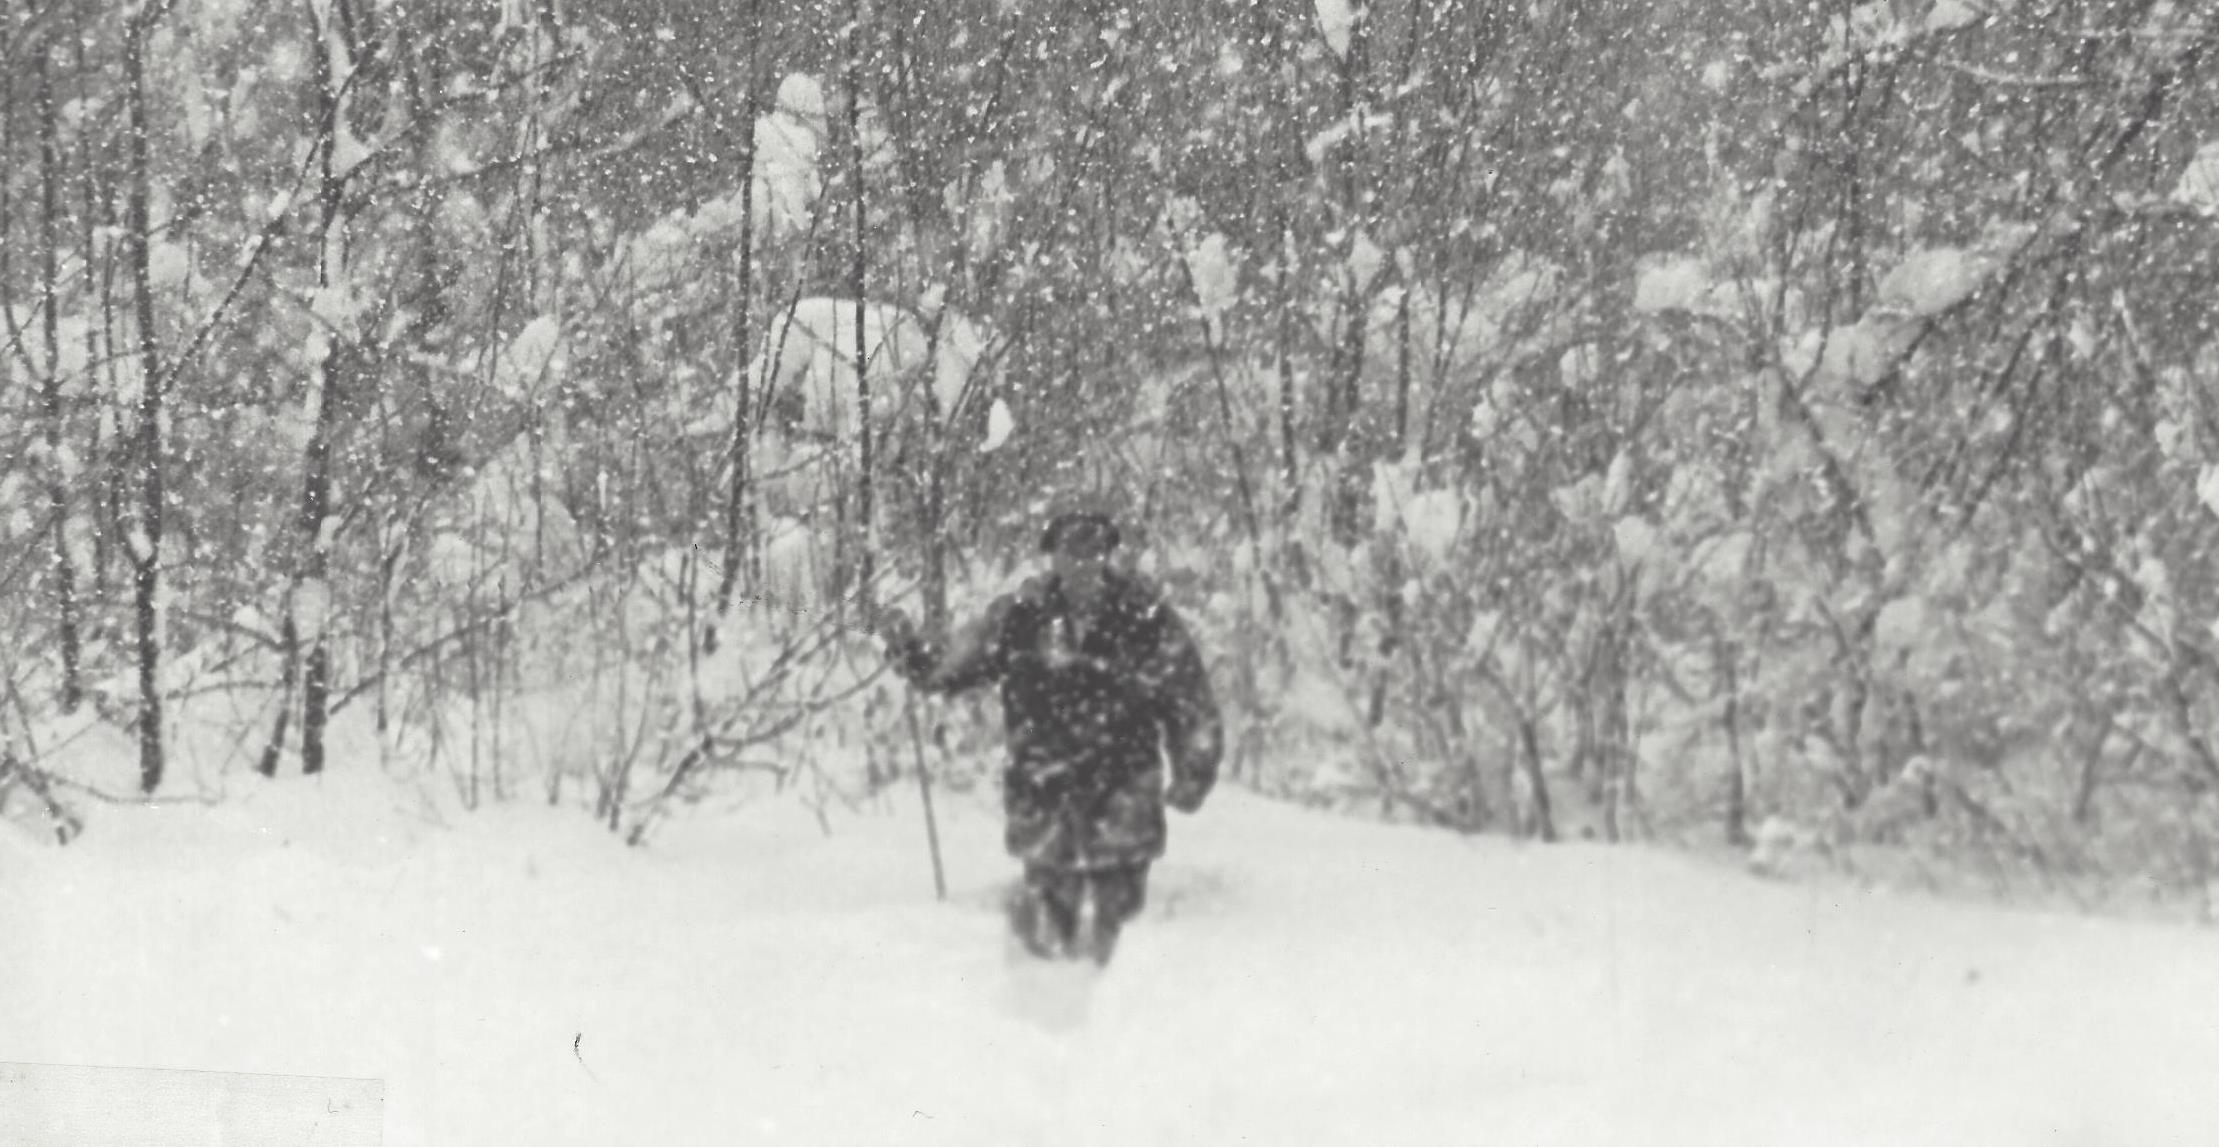 Lots of people measure snow, like this unidentified SUNY Oswego meteorology student, but few have been doing so as long as John Florek, Fulton's Waterworks Department Supervisor.